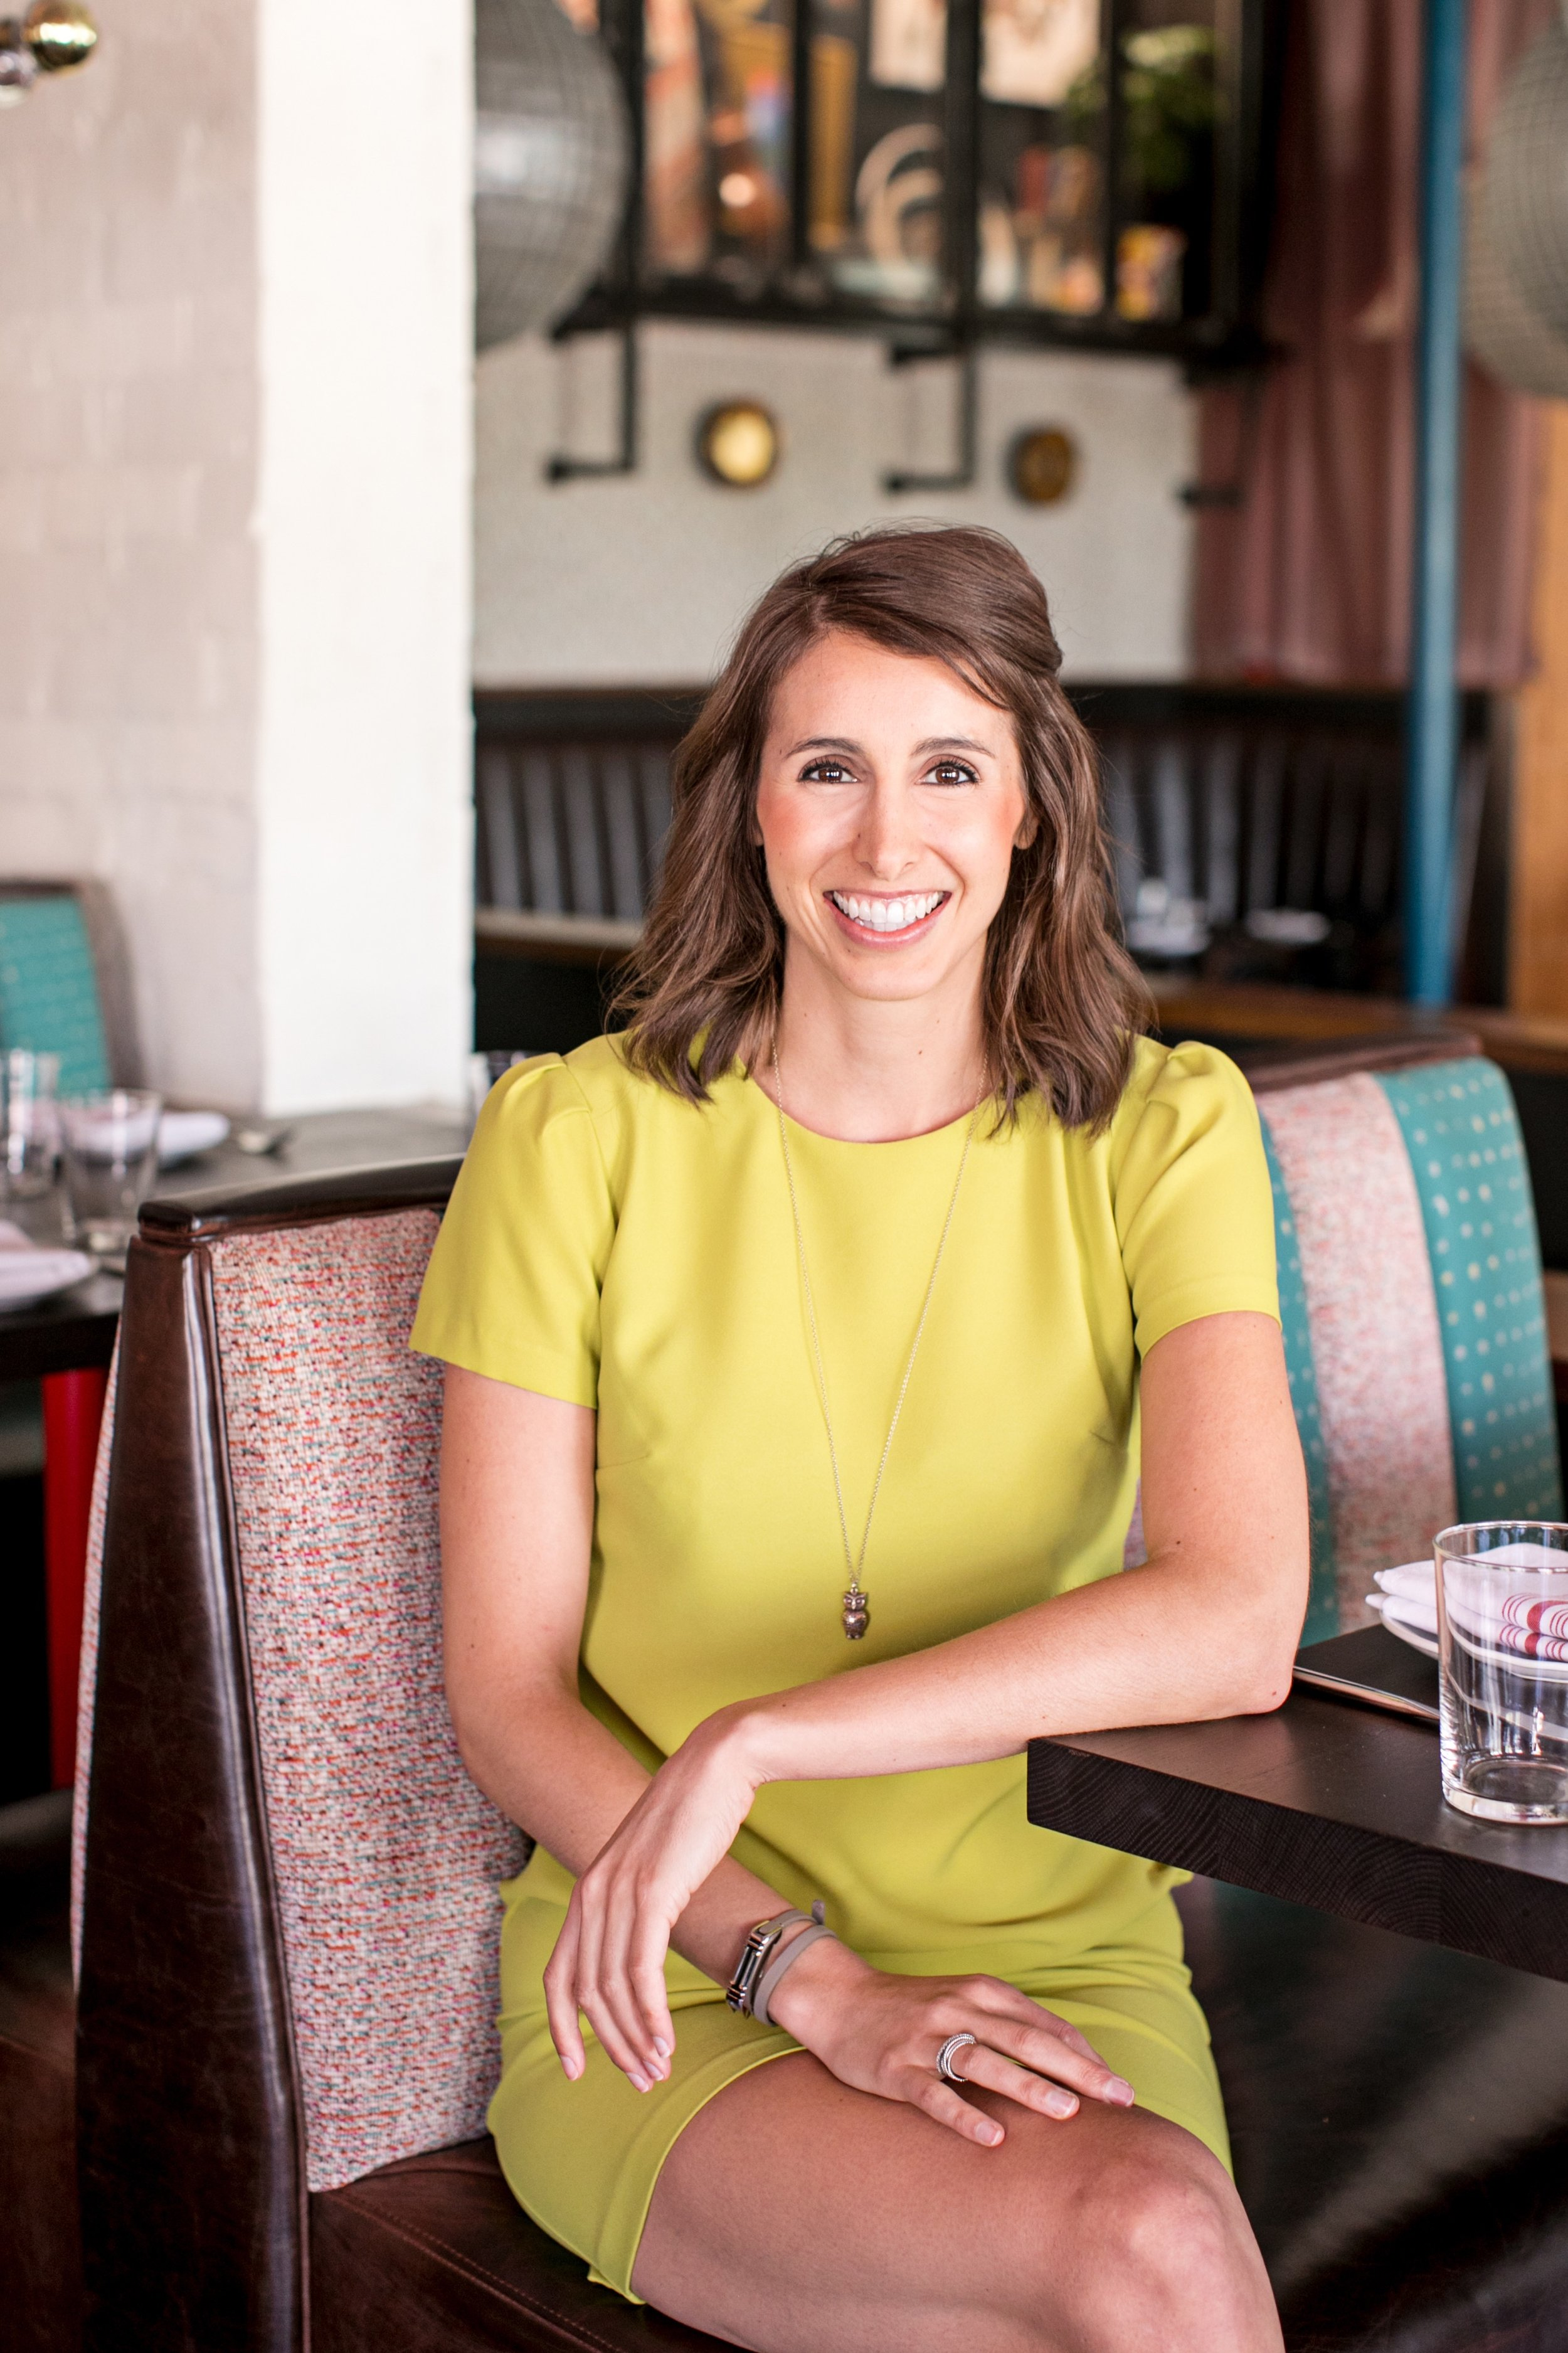 As co-owner of Castellucci Hospitality Group and General Manager of Bar Mercado and Recess, Stephanie Castellucci oversees day-to-day operations of the restaurant, while also overseeing operational and staffing affairs of Castellucci Hospitality Group's four other concepts including Cooks & Soldiers, Double Zero, Sugo and The Iberian Pig.  Stephanie began working at her family's original outpost of Sugo in middle school and continued while visiting home during college. She received her formal training at the School of Hotel Administration at Cornell University and graduated in 2009. After graduation, Stephanie returned to Atlanta and formally began her career with the Castellucci Hospitality Group as the General Manager of Sugo. In 2011, she left Sugo to serve as the General Manager of Double Zero in its original Sandy Springs location. Five years later, Double Zero successfully moved to Emory Village and introduced a refreshed, modern Italian menu.  Fun Fact: Stephanie is passionate about wine, her Peloton bike, and Levain cookies.